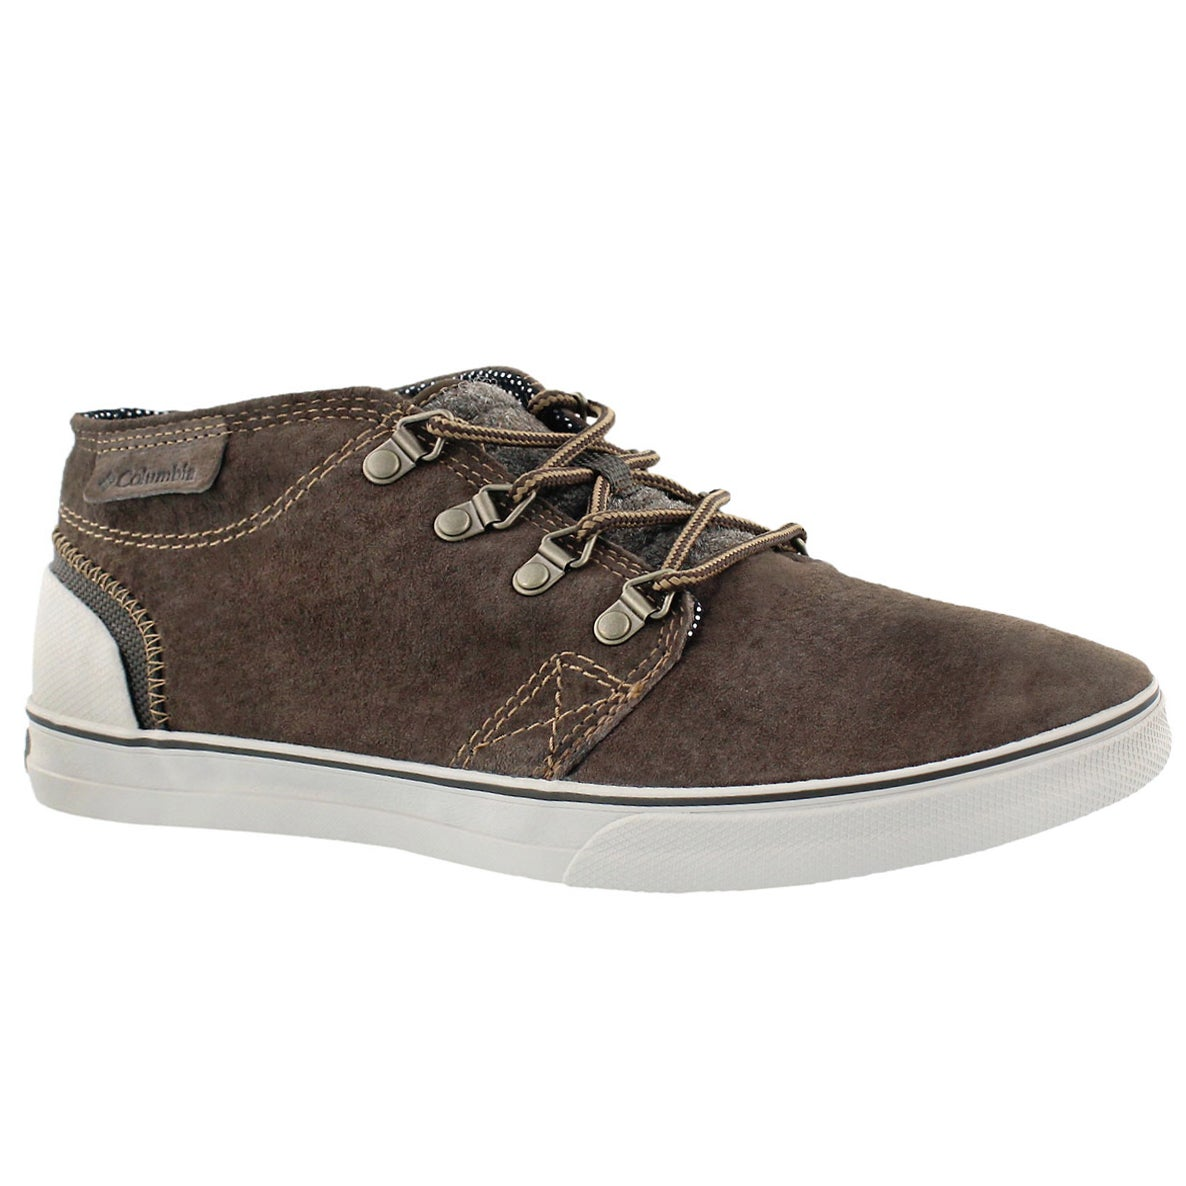 Men's VULC HALF DOME brown casual shoes